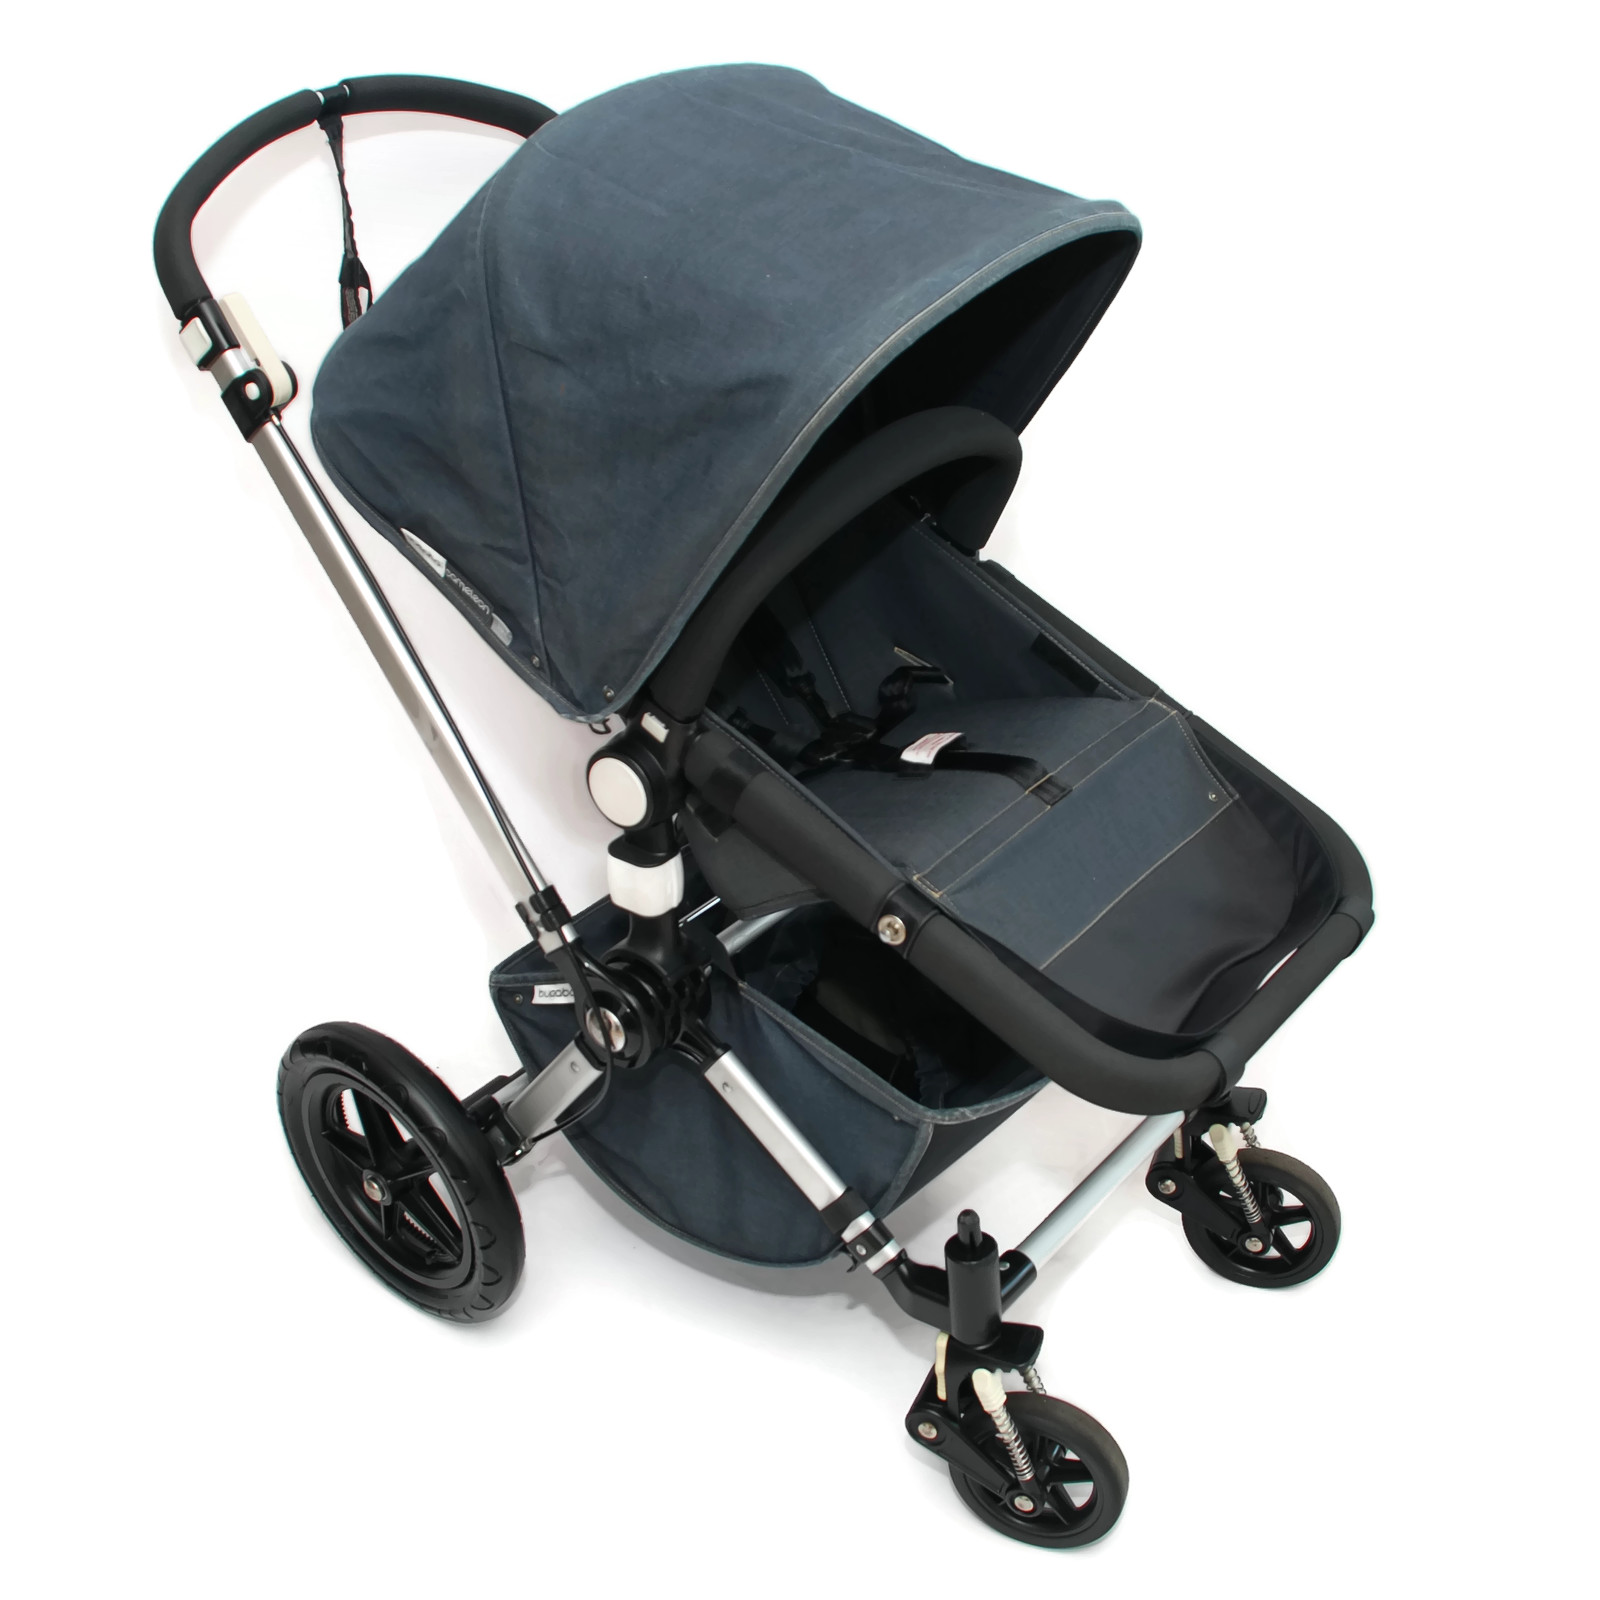 bugaboo cameleon 2 kinderwagen komplett denim 107 special limited edition jeans 8717447030010 ebay. Black Bedroom Furniture Sets. Home Design Ideas